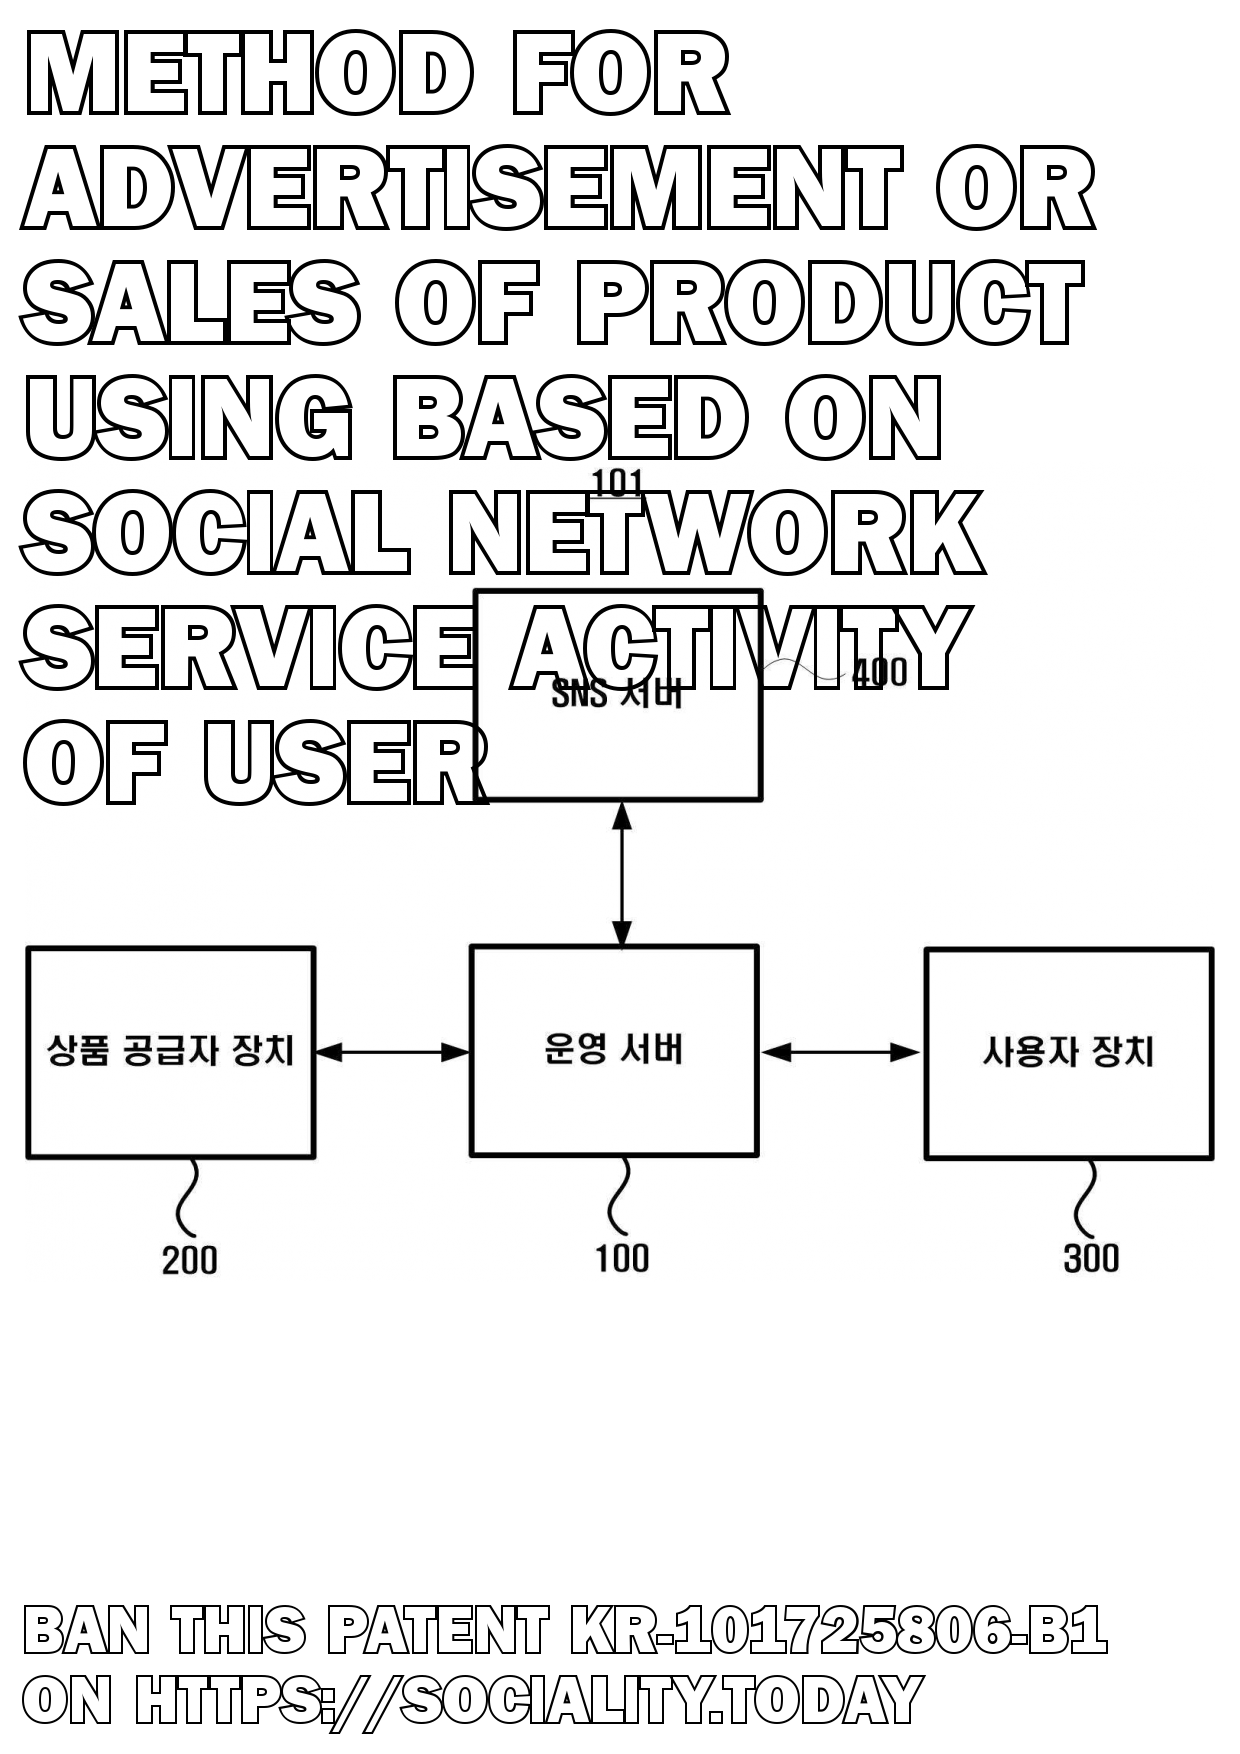 Method for advertisement or sales of product using based on social network service activity of user  - KR-101725806-B1